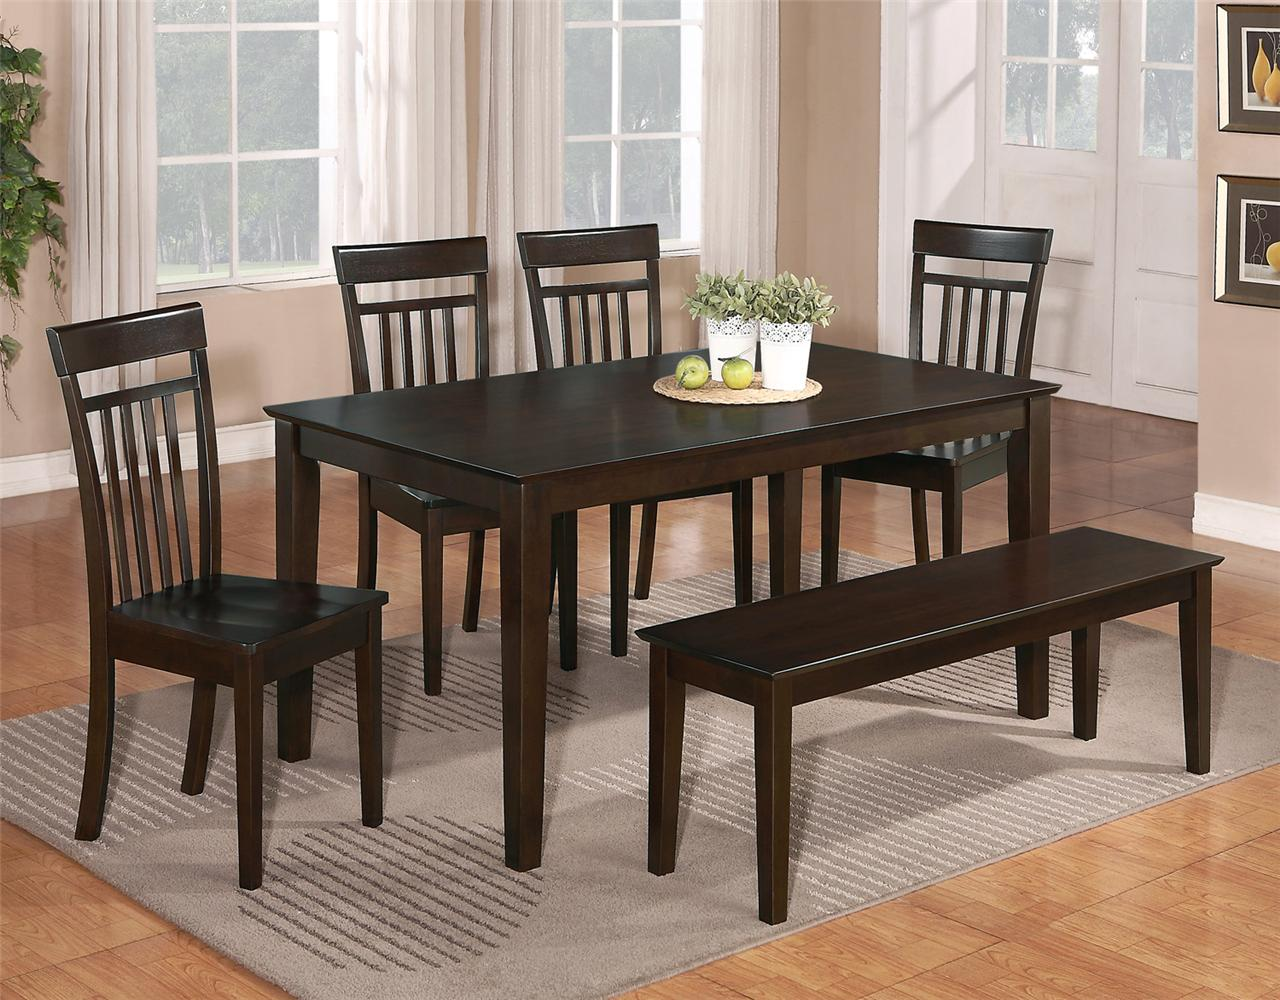 6 pc dinette kitchen dining room set table w 4 wood chair for Dining room kitchen sets